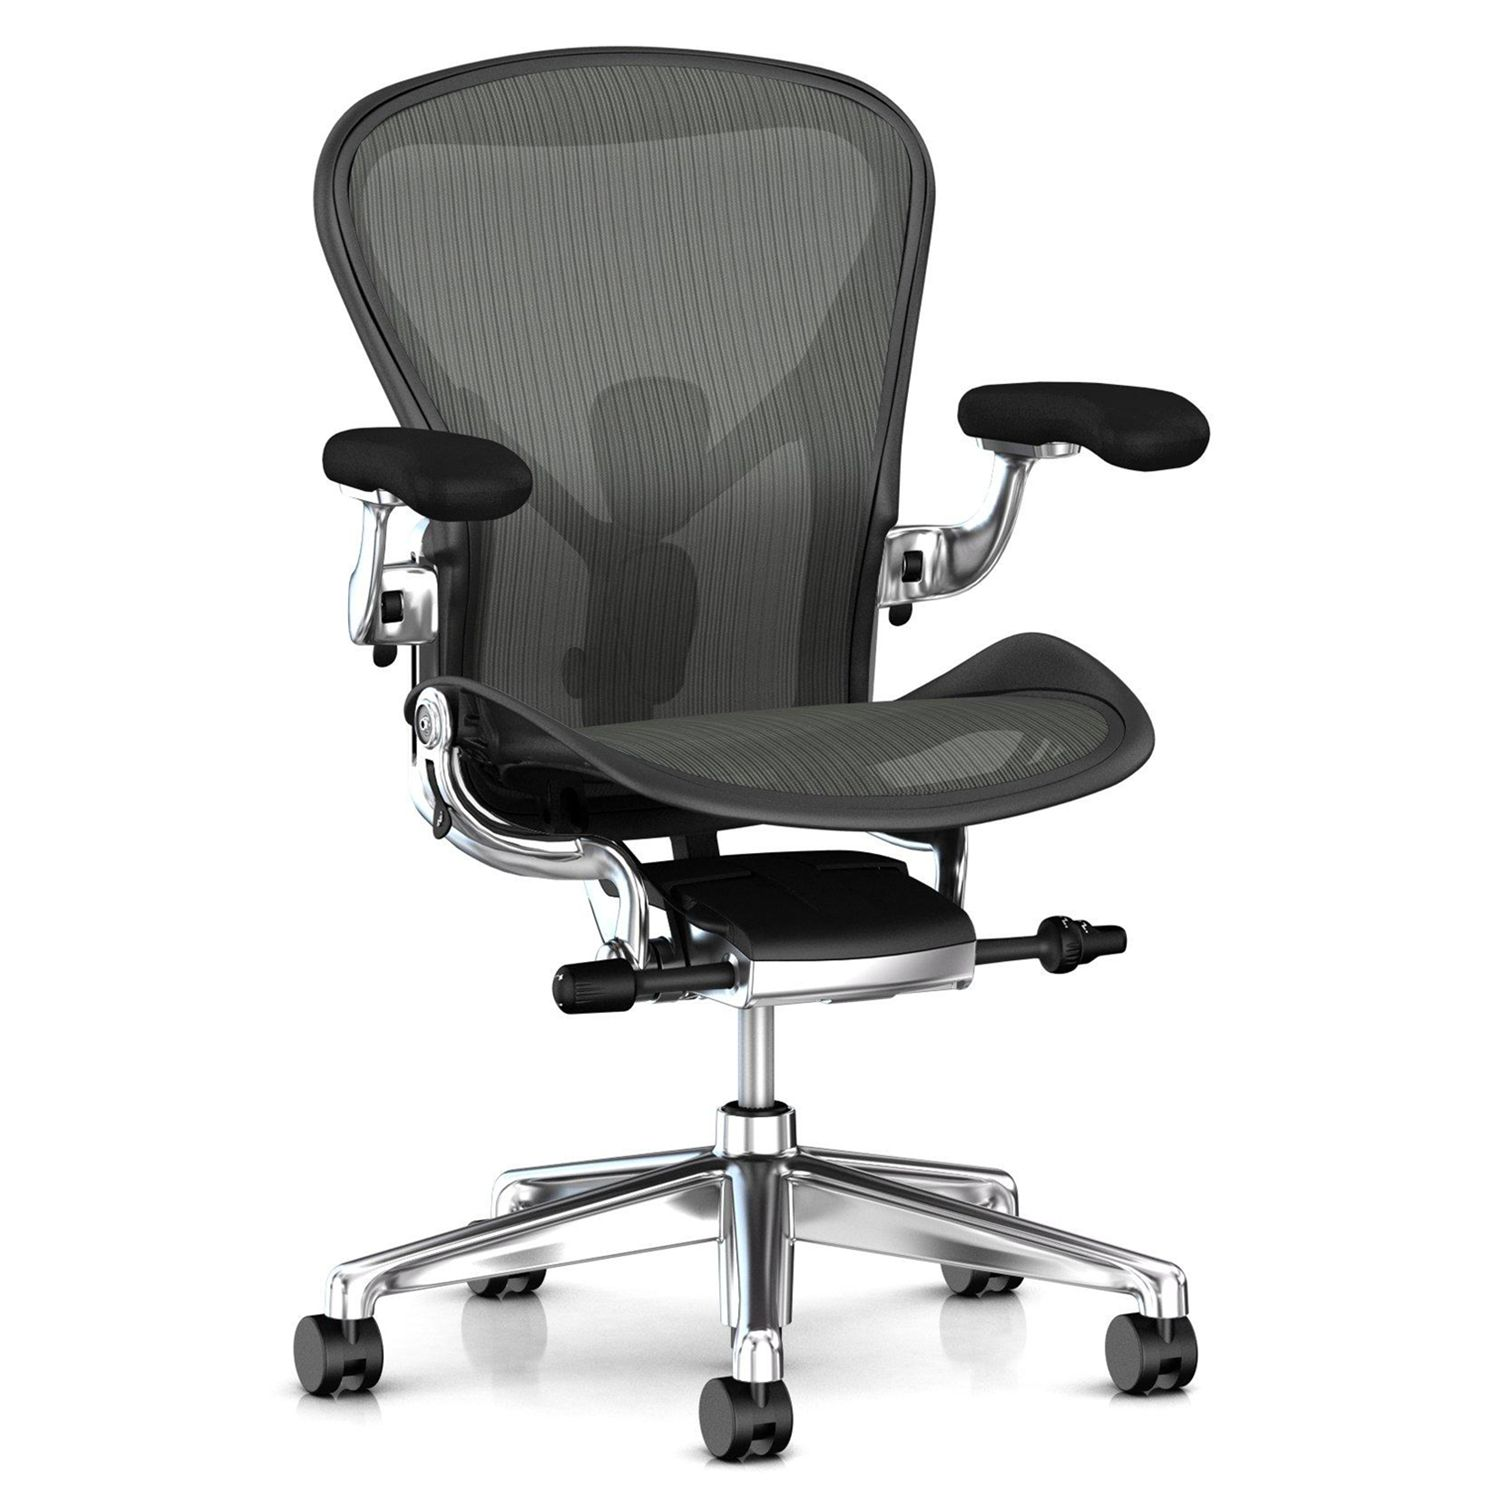 Herman Miller Herman Miller Aeron Office Chair, Graphite/Polished Aluminium